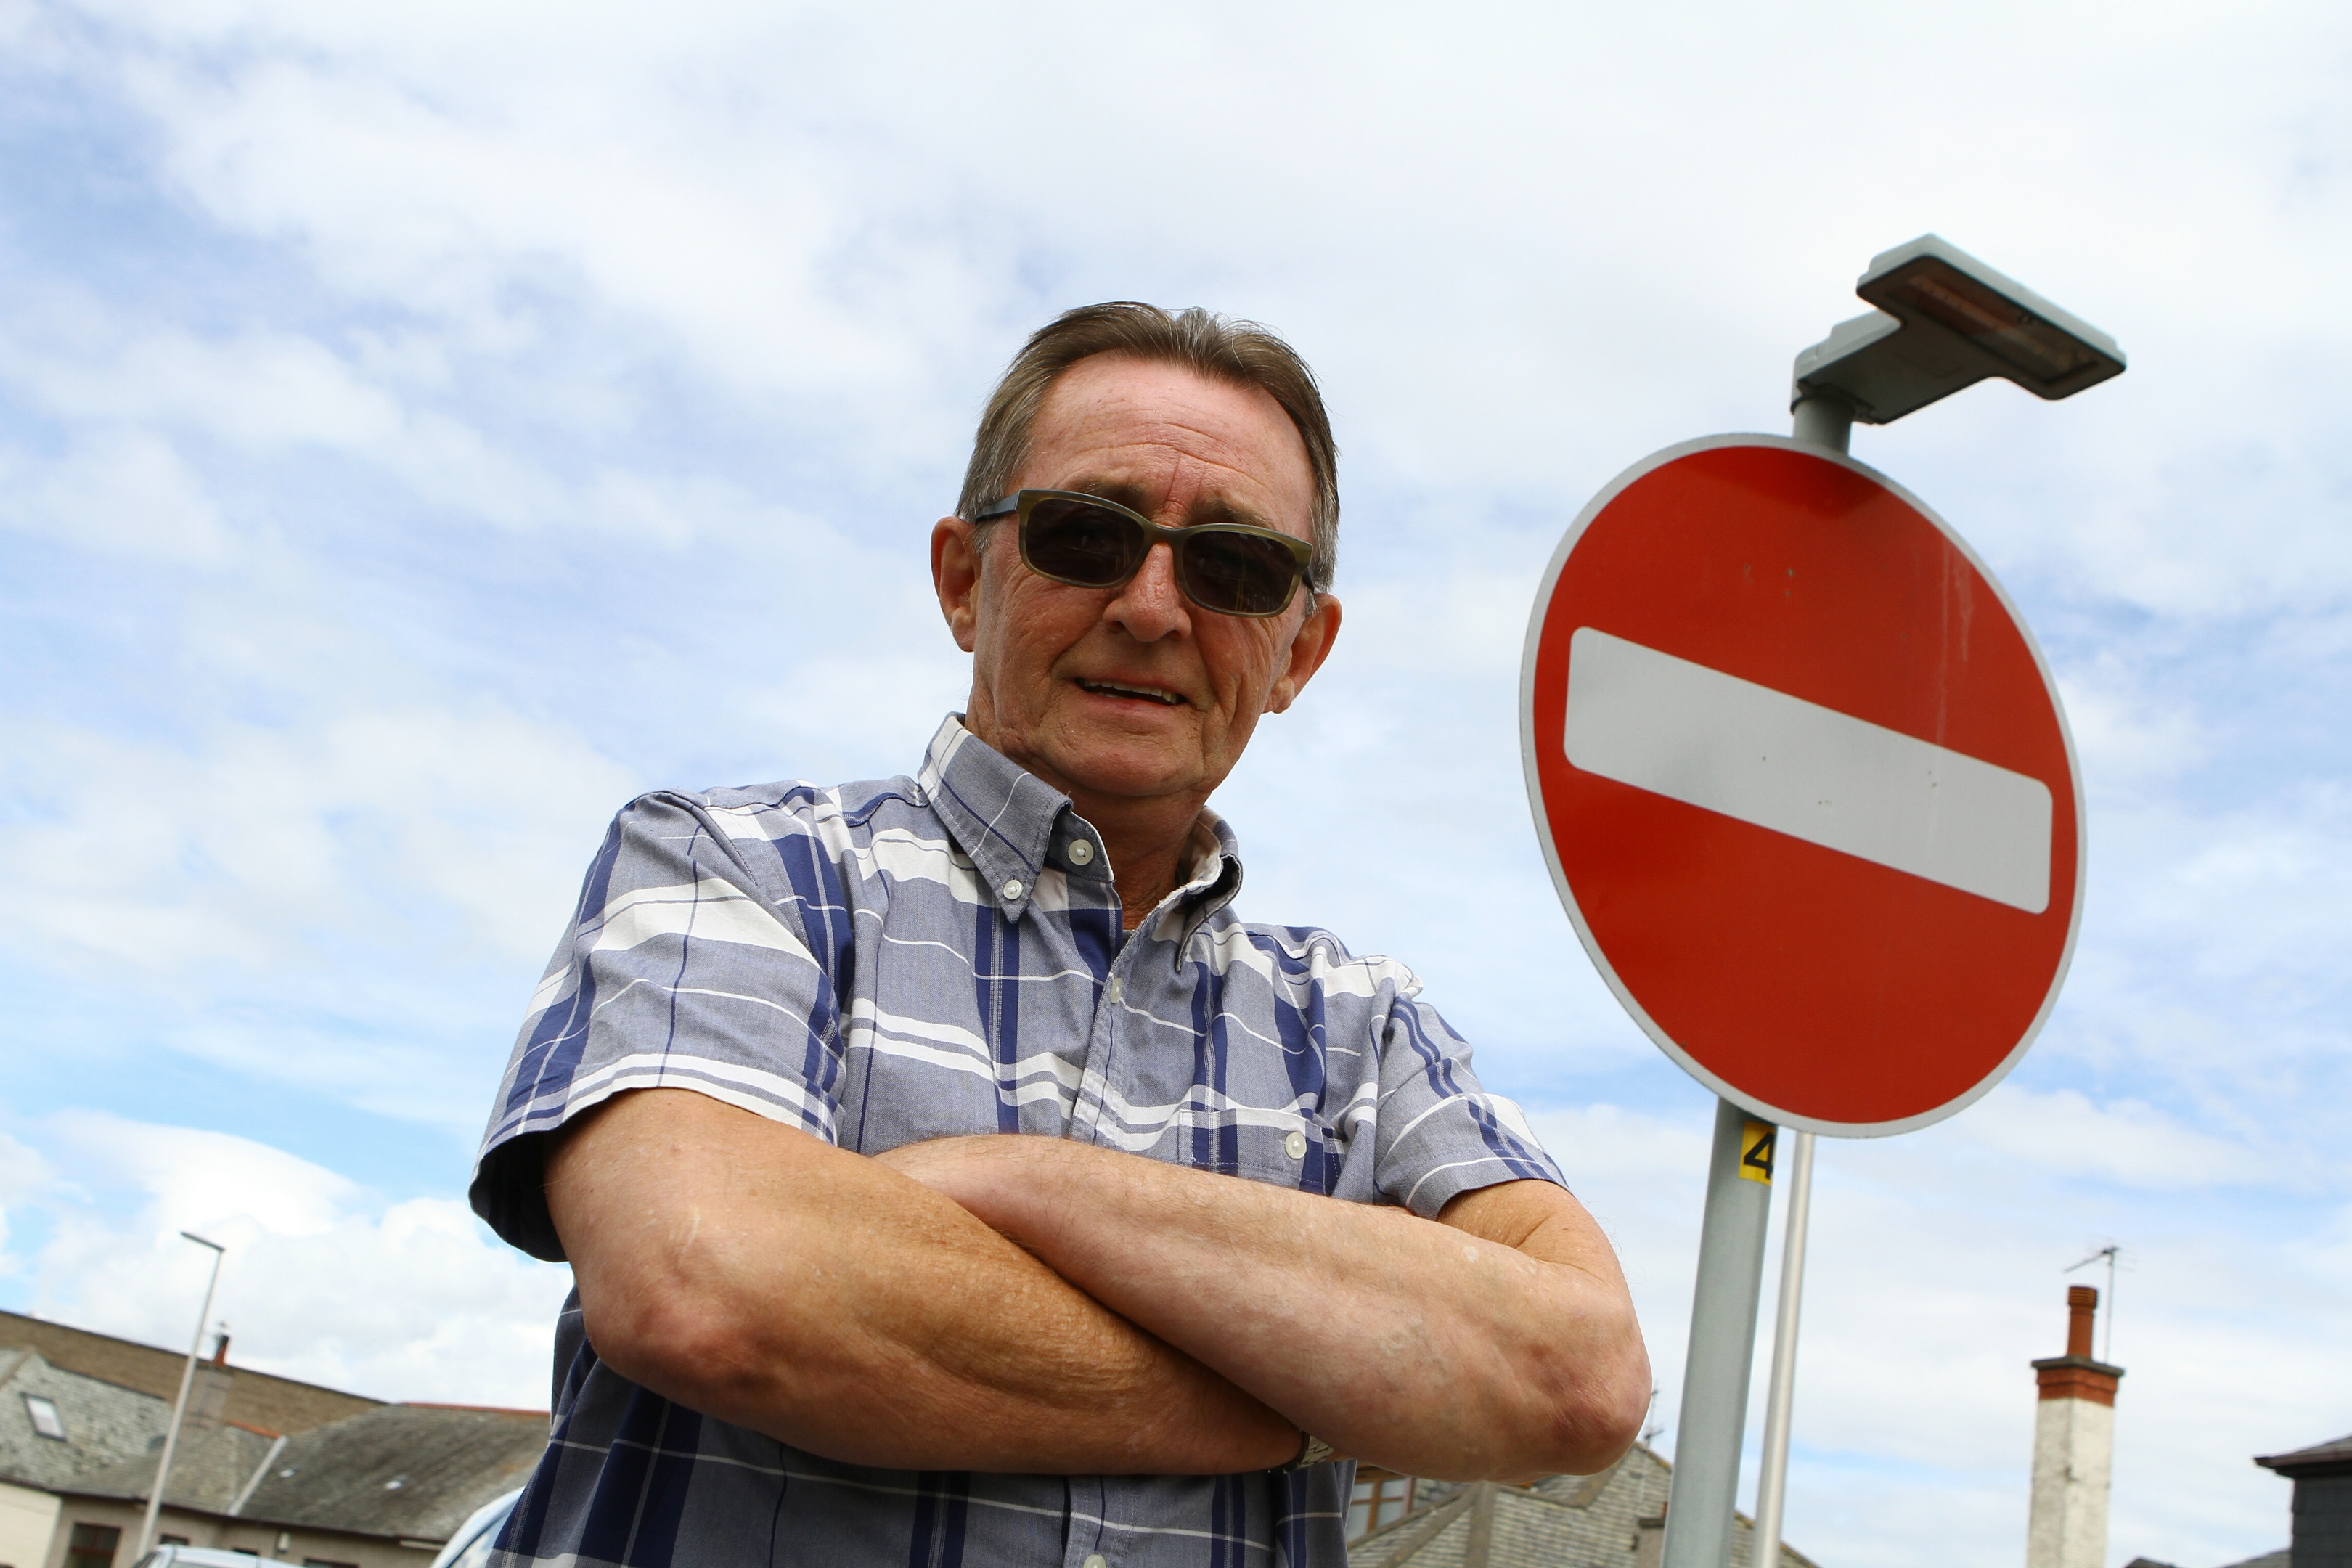 Resident Charlie Steele says he has seen HGVs reversing back up the one-way street